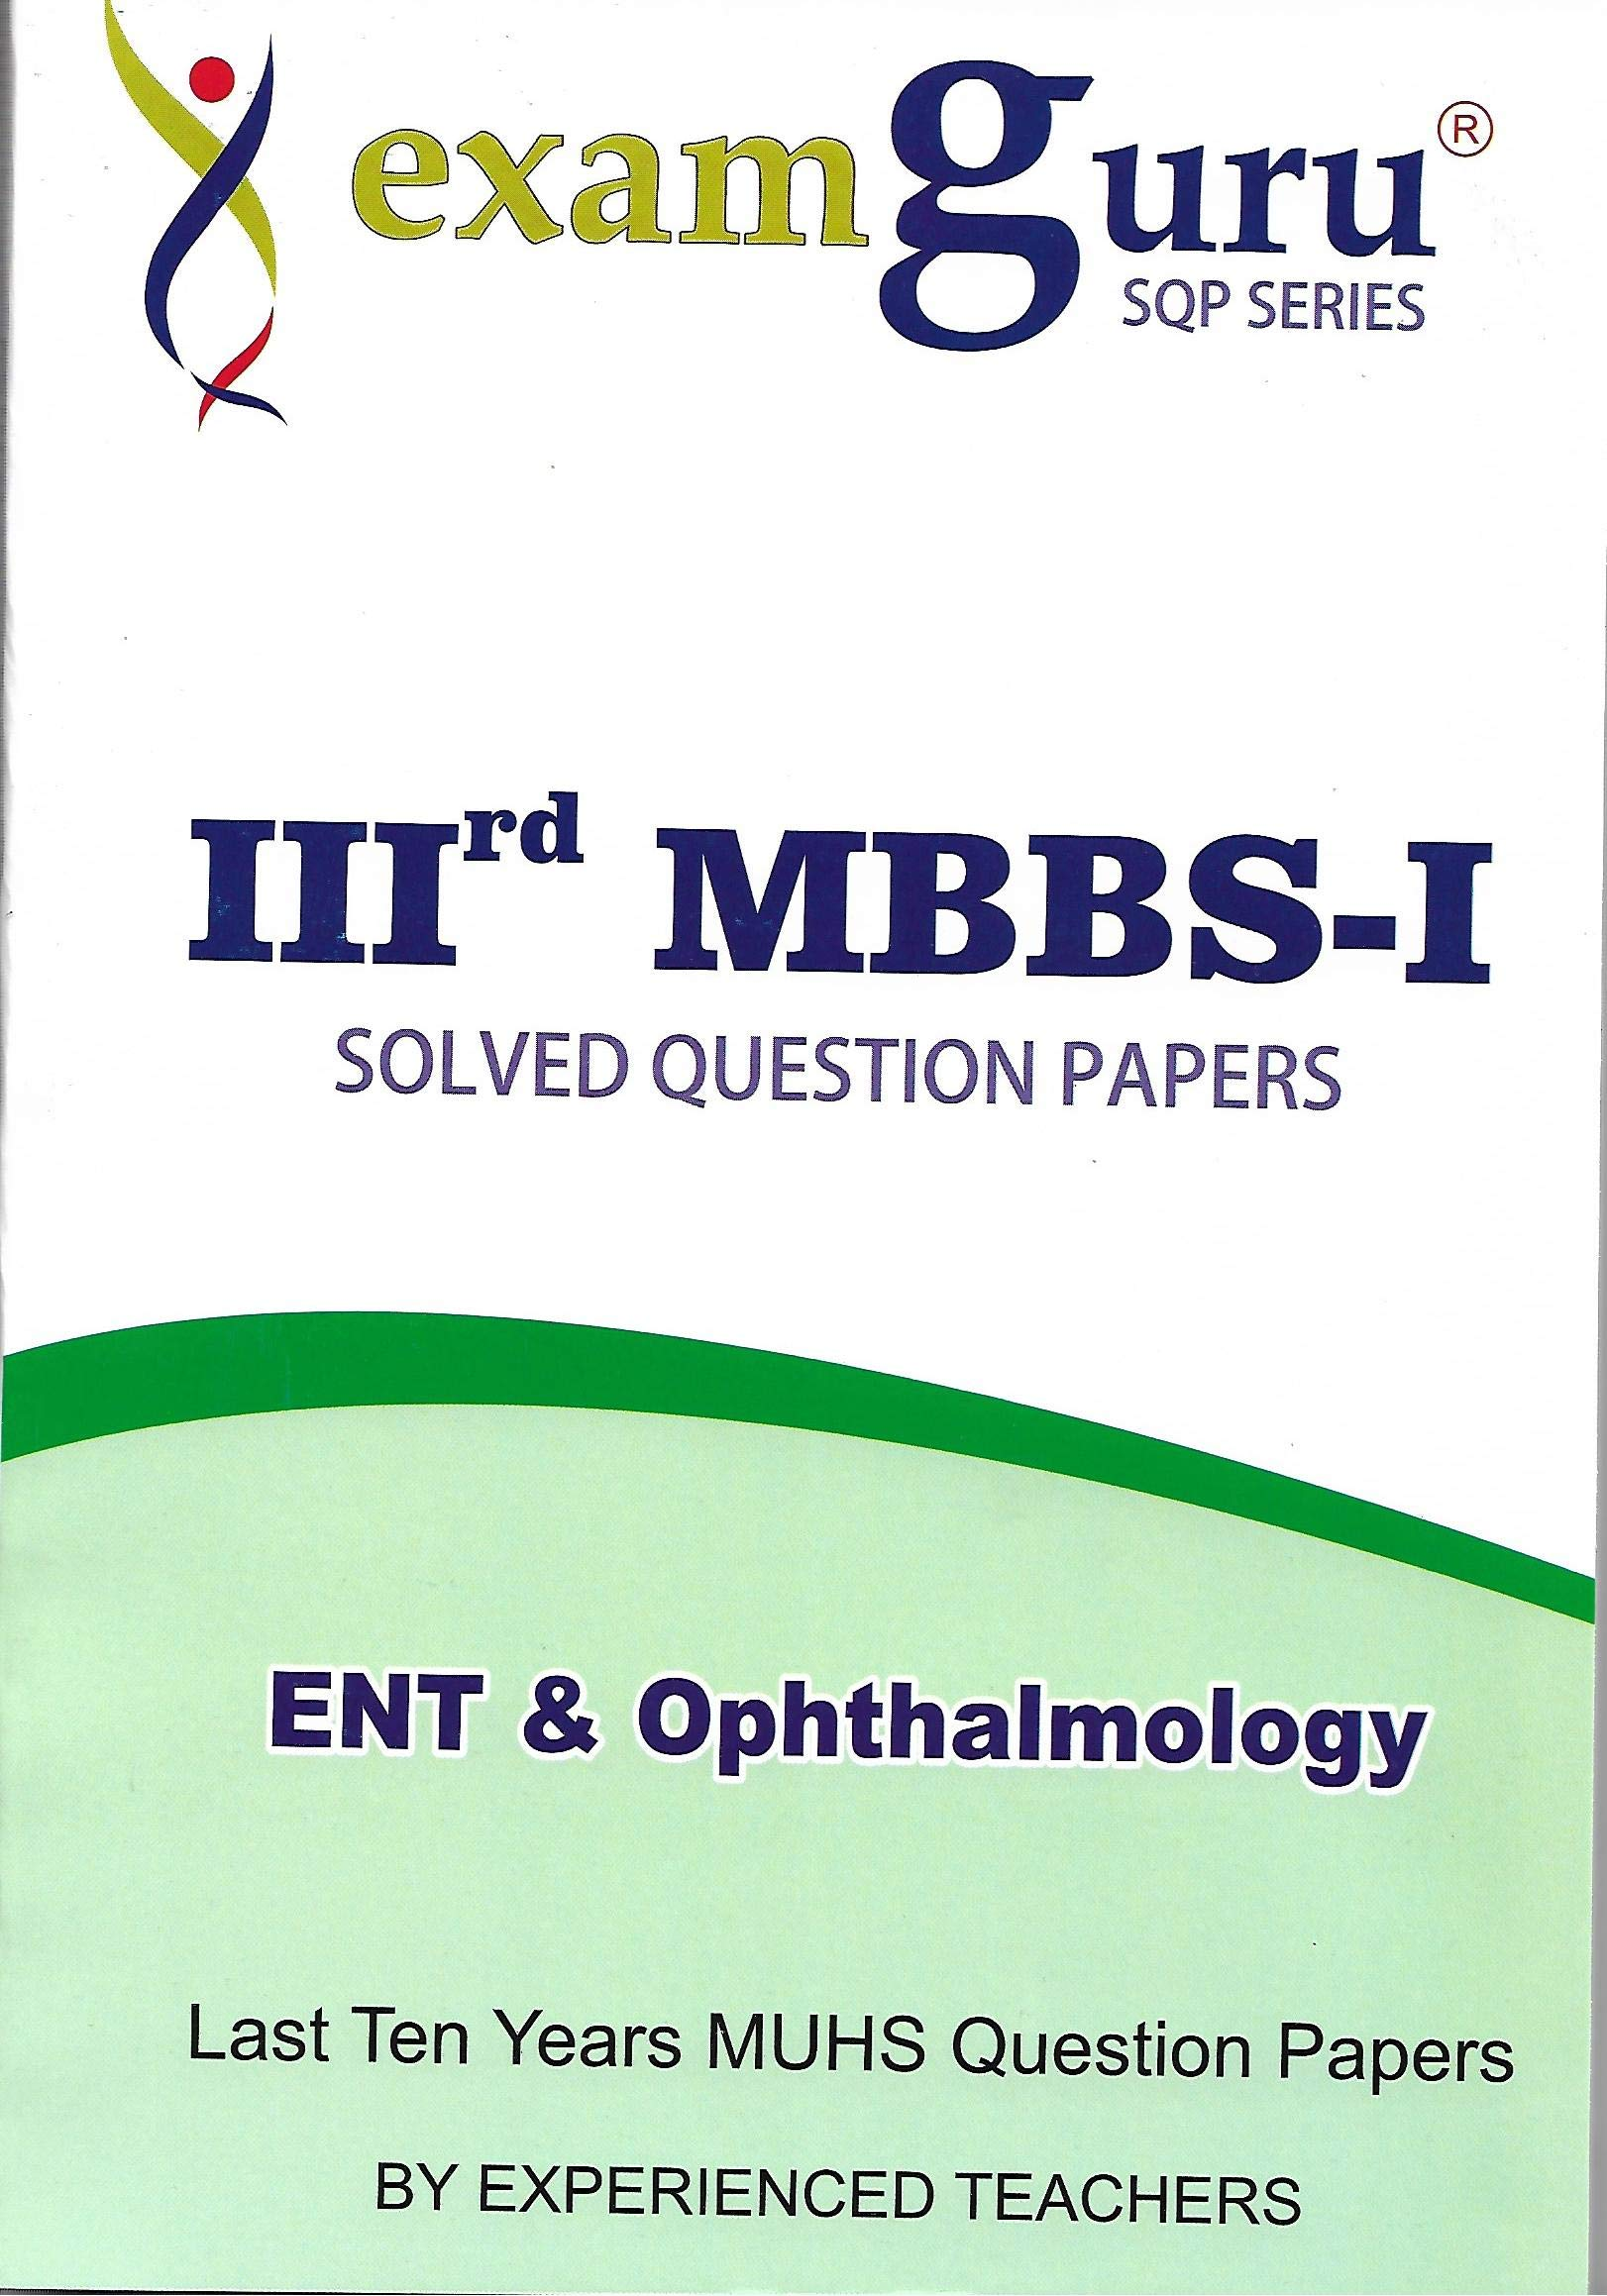 Buy ExamGuru 3rd MBBS - I Solved Question Papers ENT